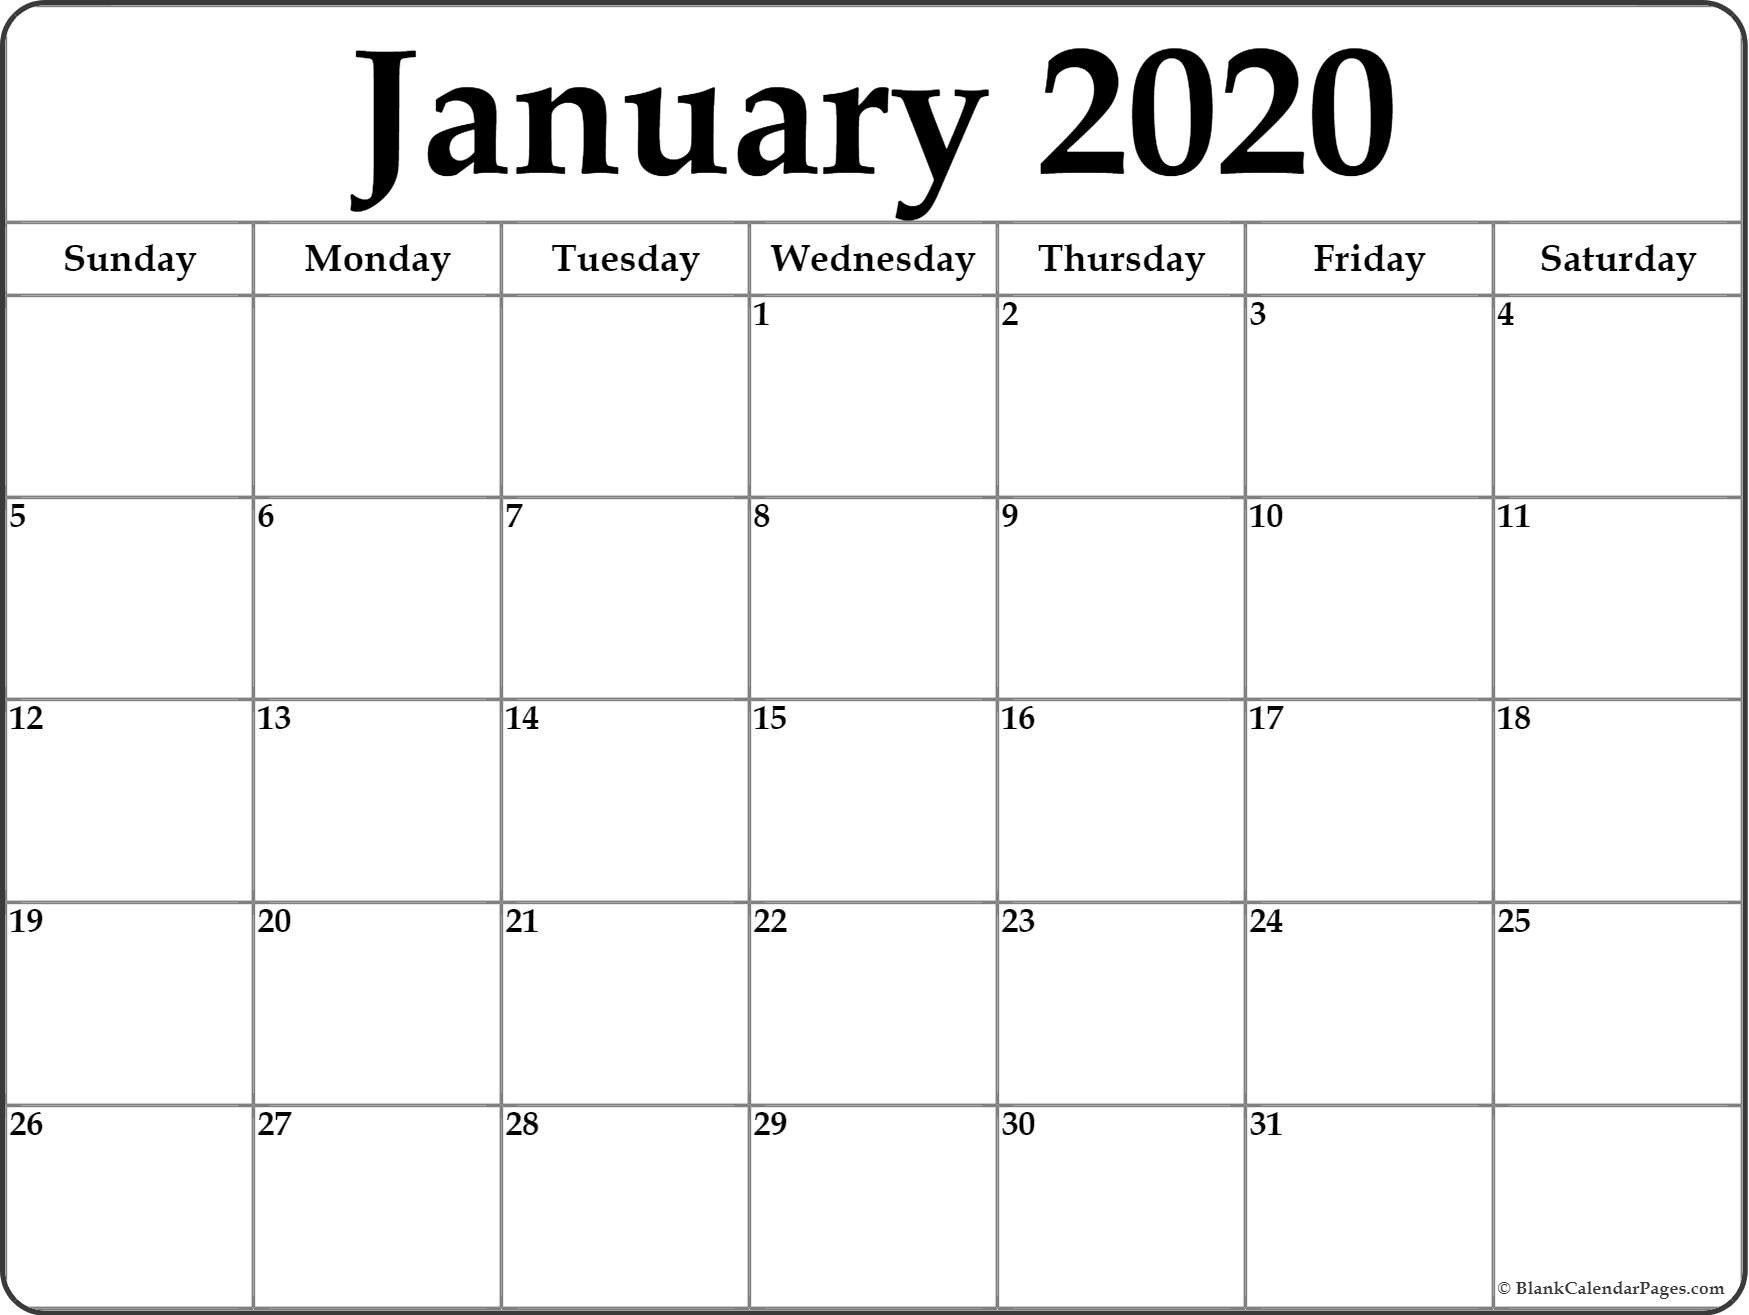 Blank Calendar 2020 Monthly - Wpa.wpart.co-Monthly Calendar Sheets 2020